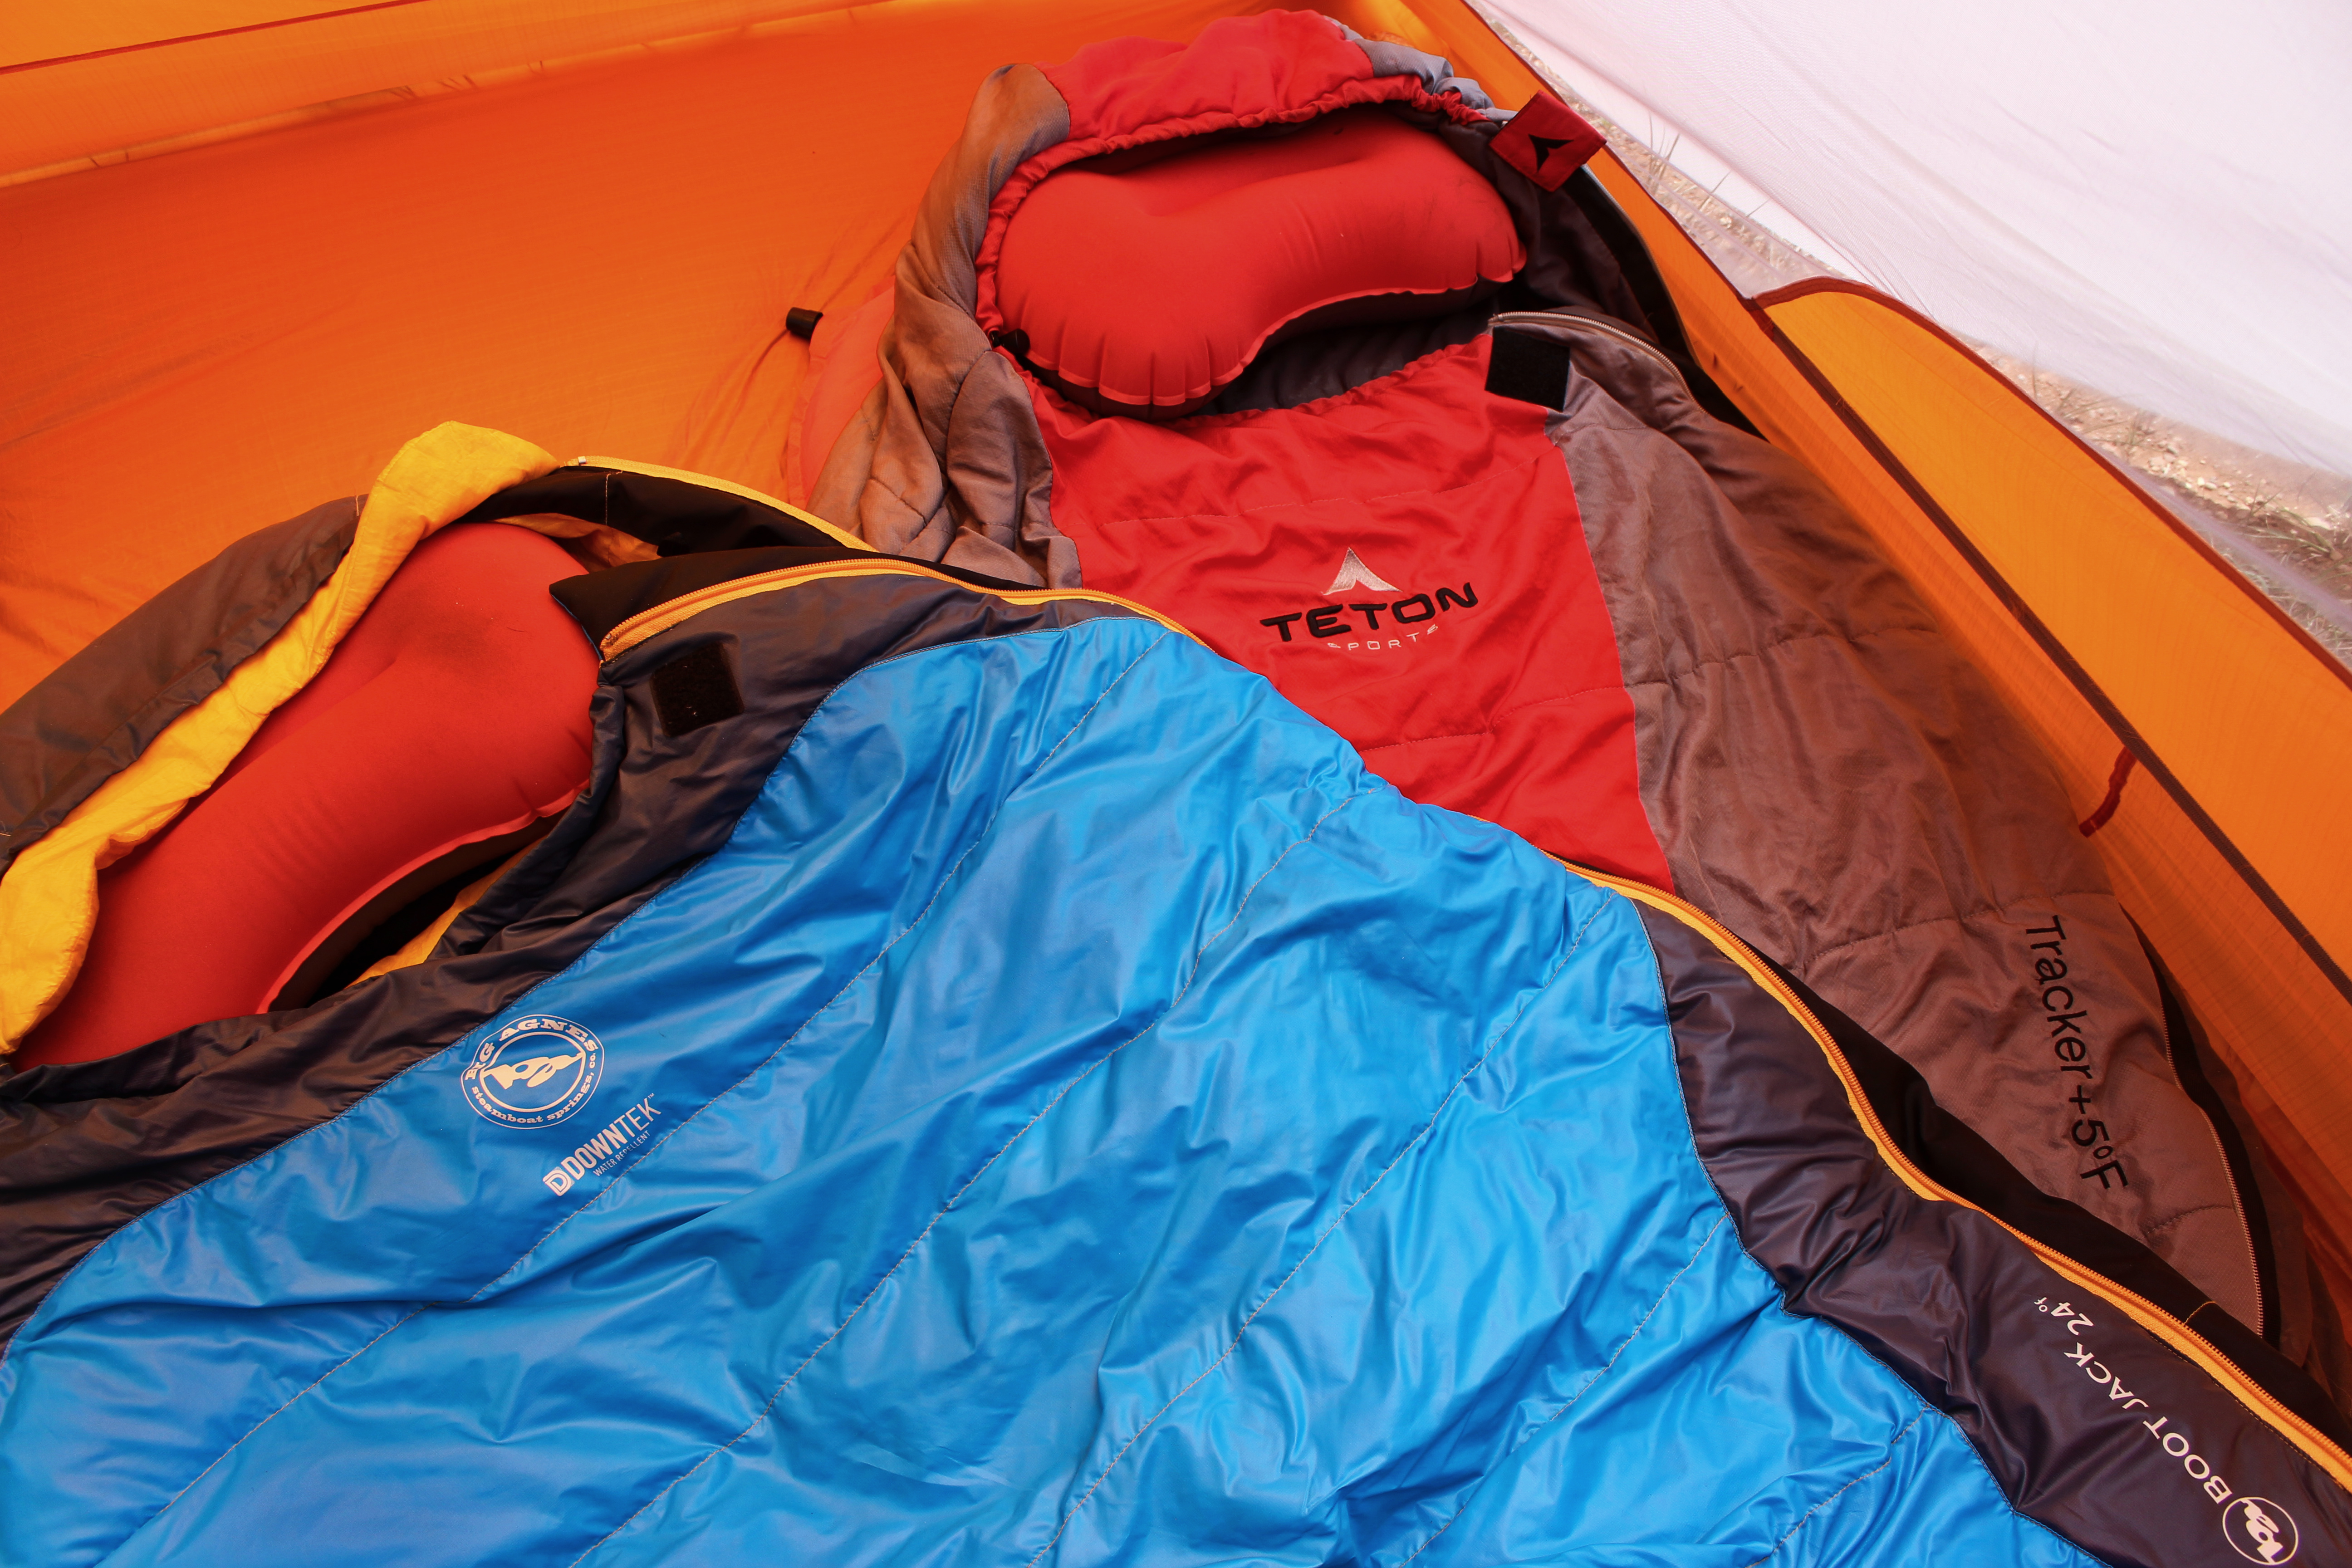 quilt pinterest hiking quilts image gear ultralight sleeping and pin more bag explore backpacking